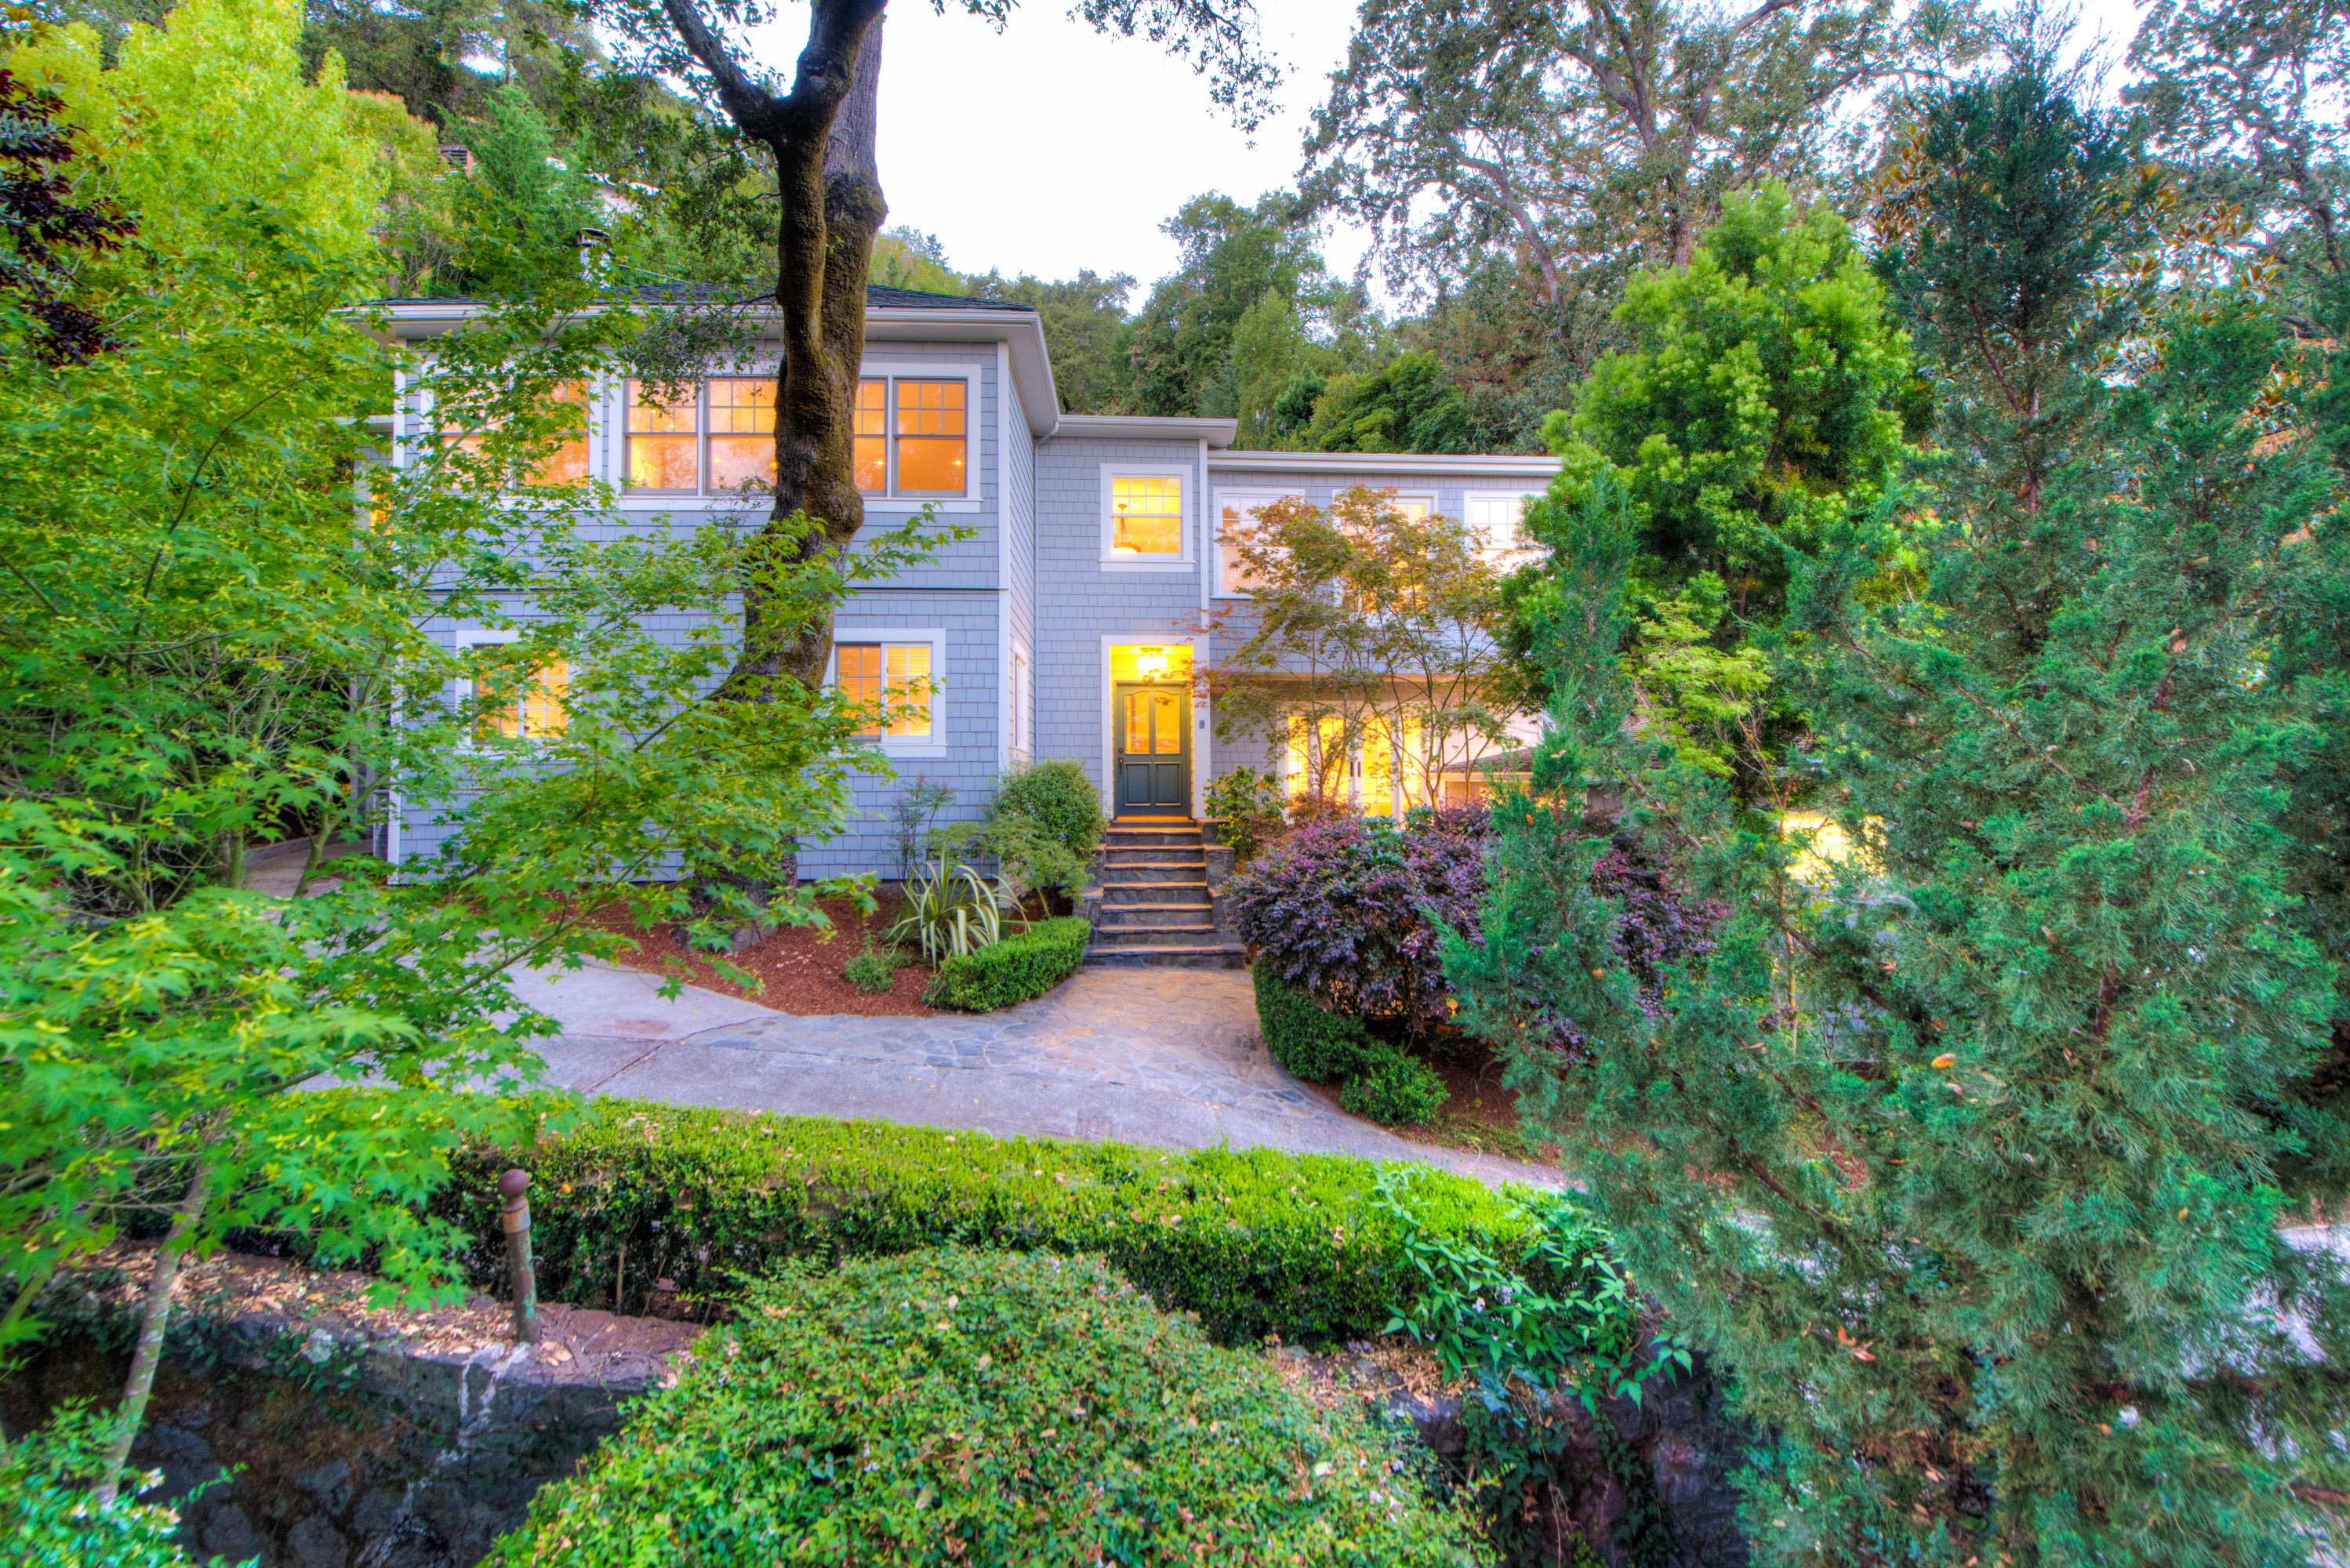 Single Family Home for Sale at Spectacular Vintage Home Beautifully Renovated for Today's Modern Living 2 Foothill Road San Anselmo, California 94960 United States